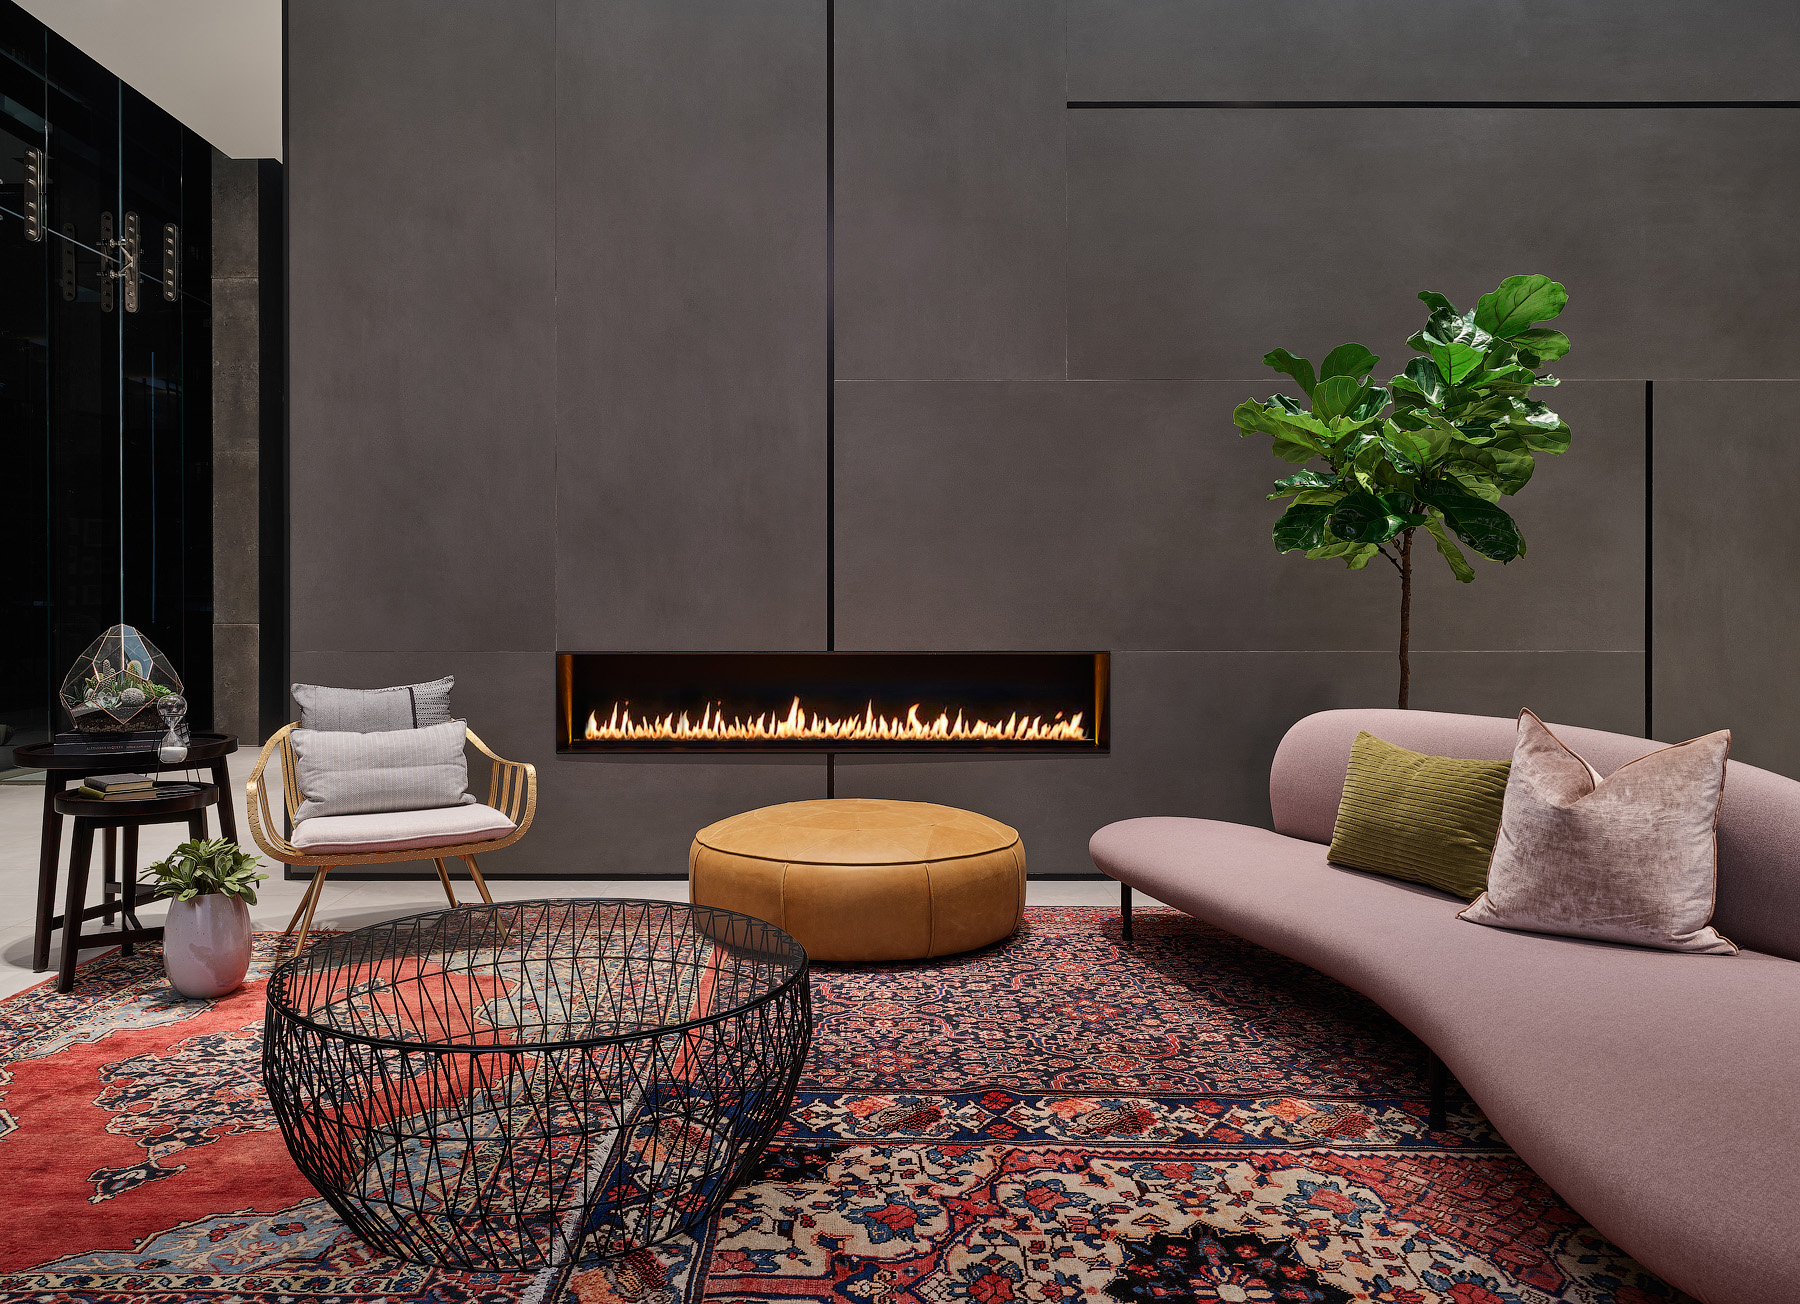 Empire Phoenix seating area with large charcoal tile wall, contemporary fireplace, blush pink sofa, and Persian rug